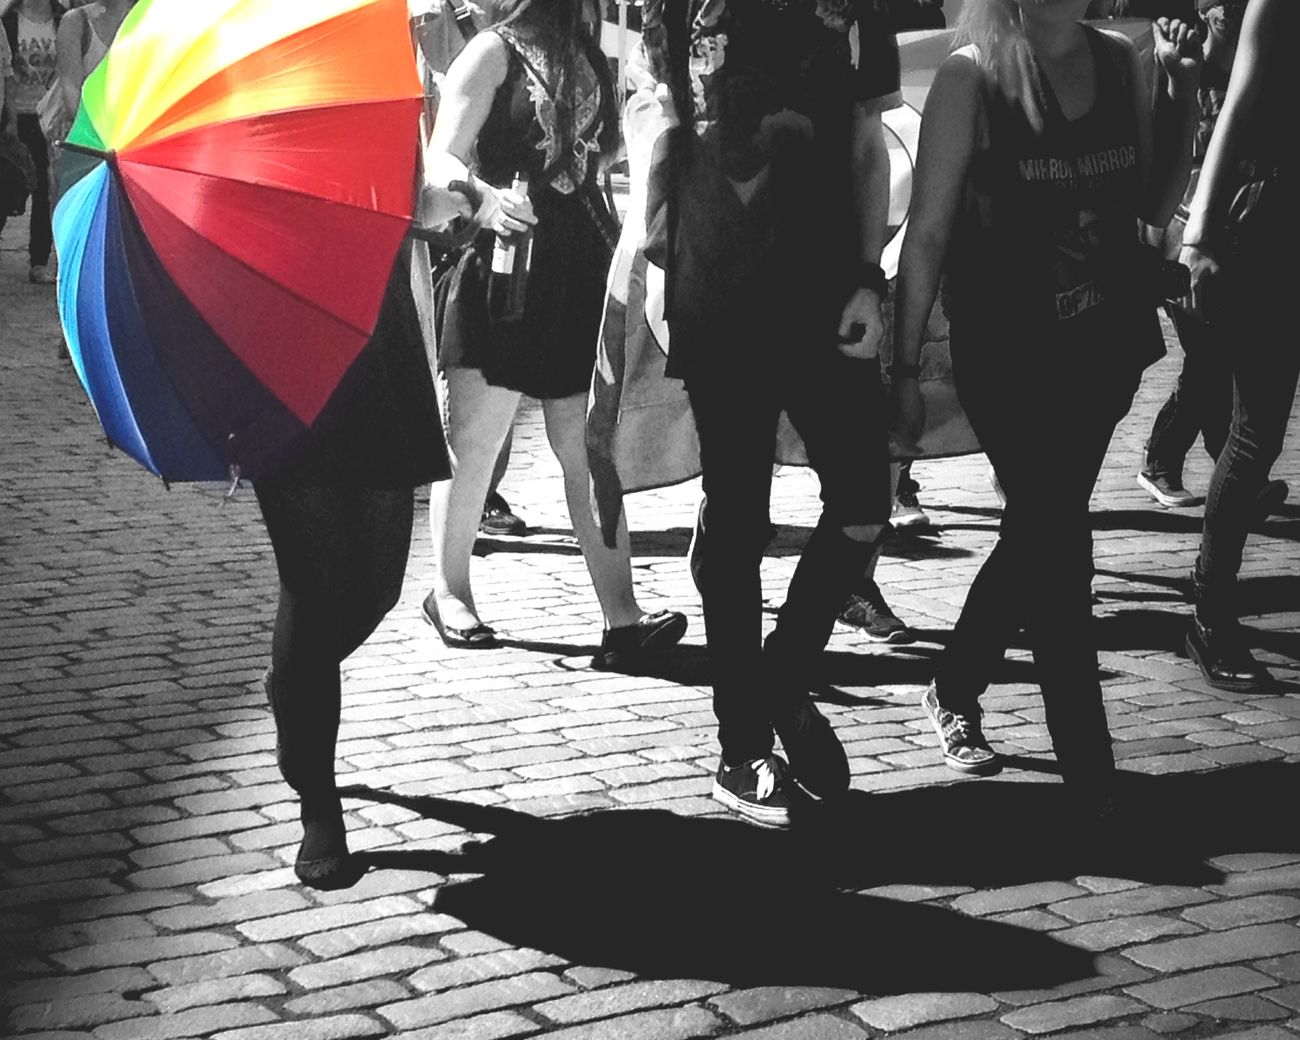 Marching for those who can't... Helsinki Pride 2015 Helsinki Streetphotography Colorsplash Party Time The Street Photographer - 2015 EyeEm Awards